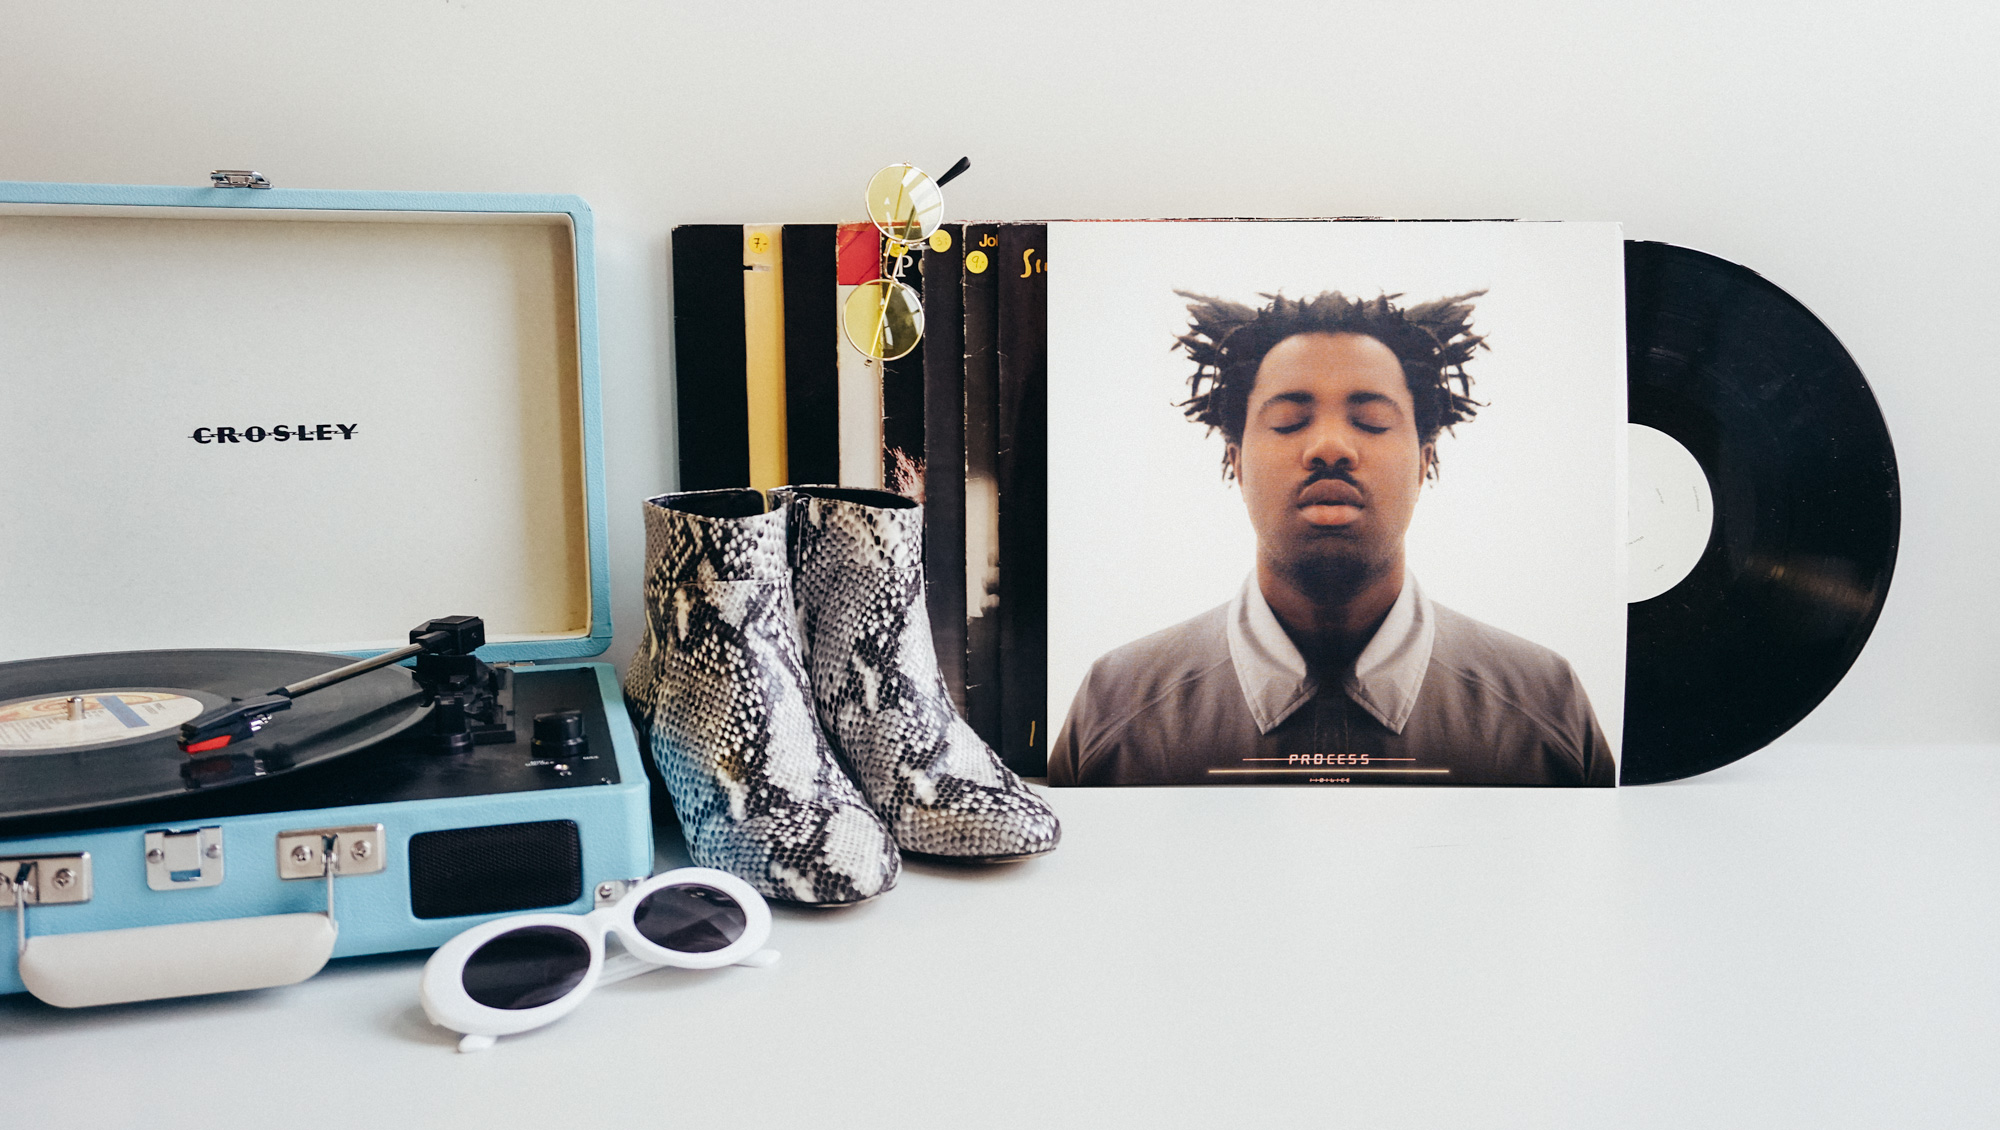 Playlist, Vinyl, Accessoires, Fashion, Fashion Blog, Music Blog, Inspiration, Tune In, Spotify, Listen, Music, Hip Hop, Rap, New Music, Snake Skin Boots, Sunglasses